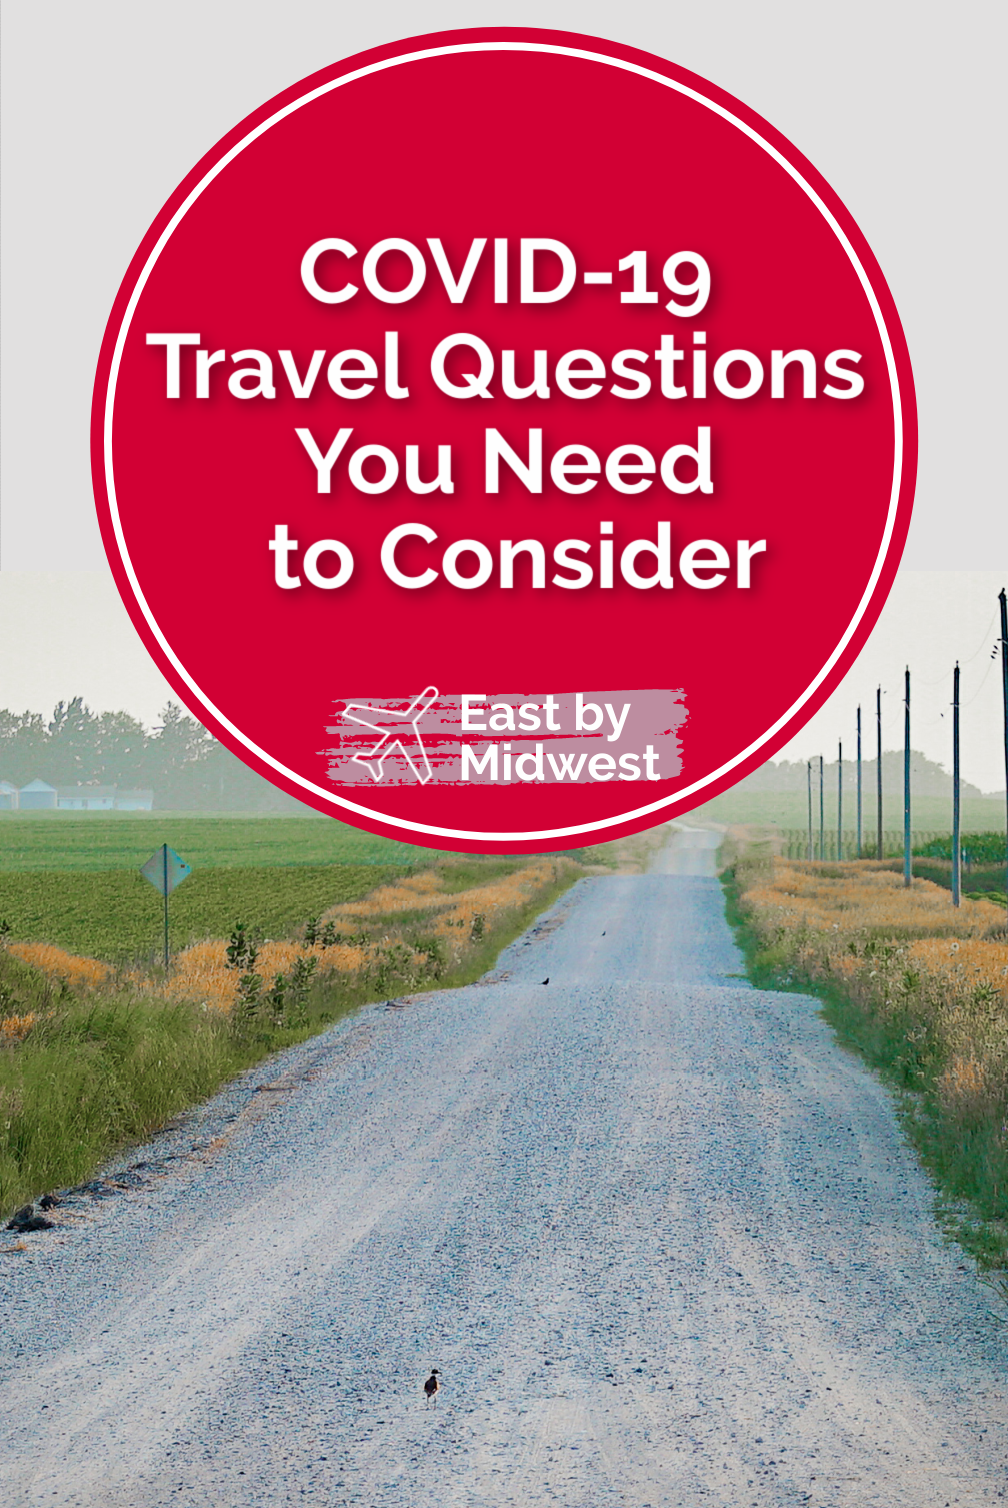 COVID-19 Travel Questions You Need to Consider